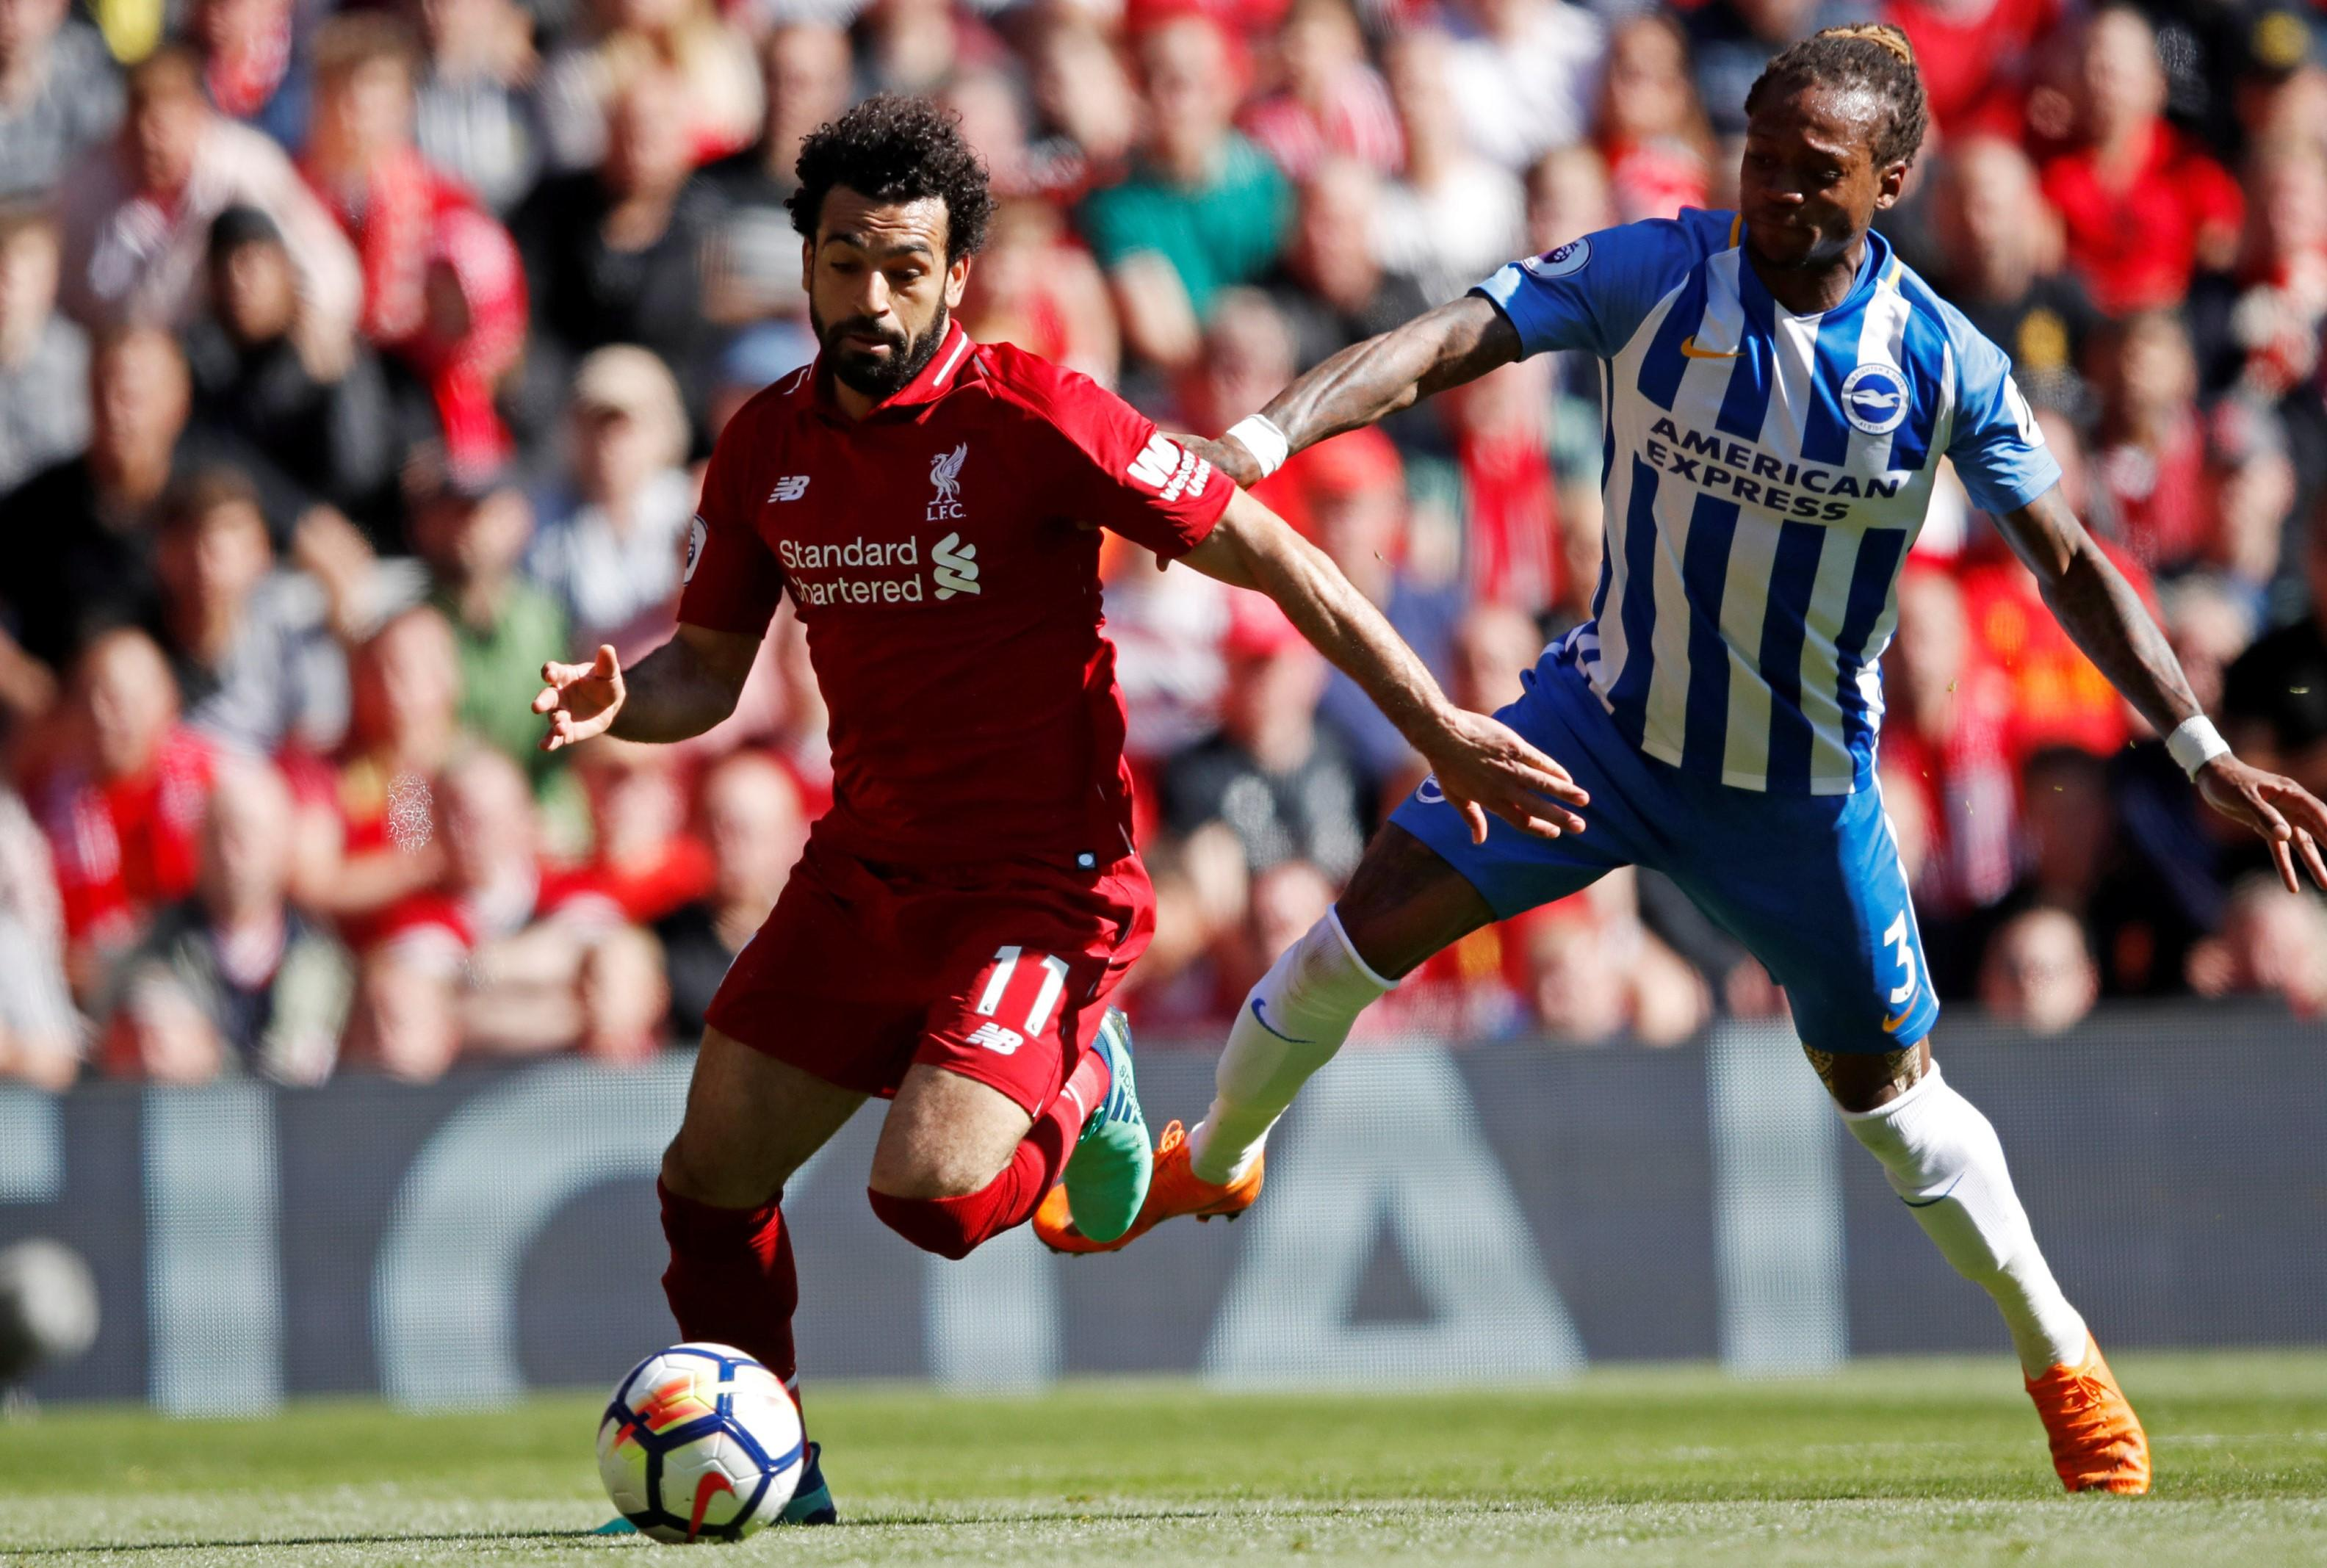 FPL Lessons: Position and price crucial for Salah interest